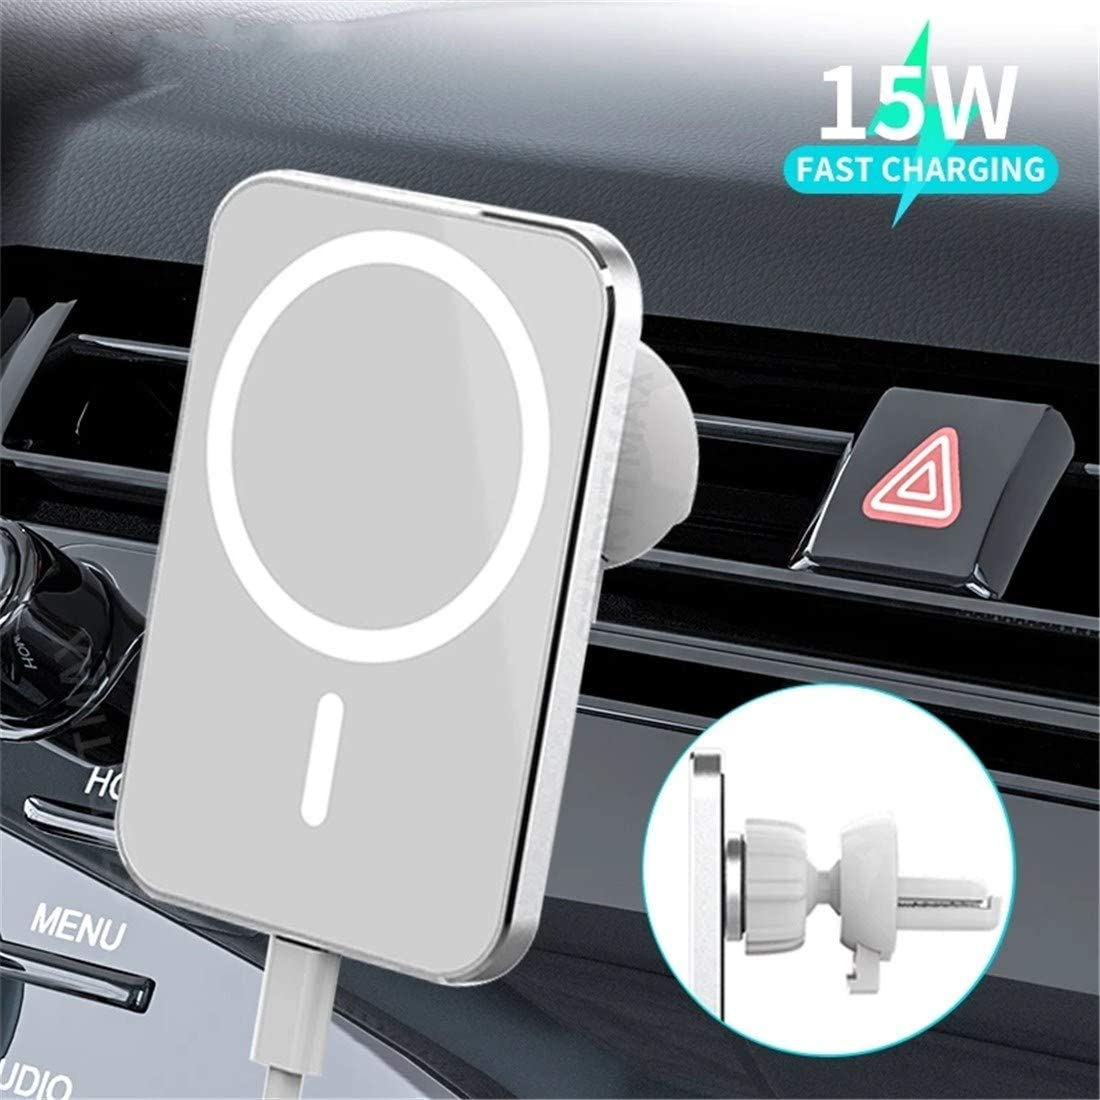 Walotar Magnetic Car Air Vent Mount Wireless Charger Phone Holder Compatible with MagSafe iPhone 12 Series 15W Fast Charging Automatic Clamping 10W/7.5W/5W Design for MagSafe iPhone 12 iPhone 12 Pro Max